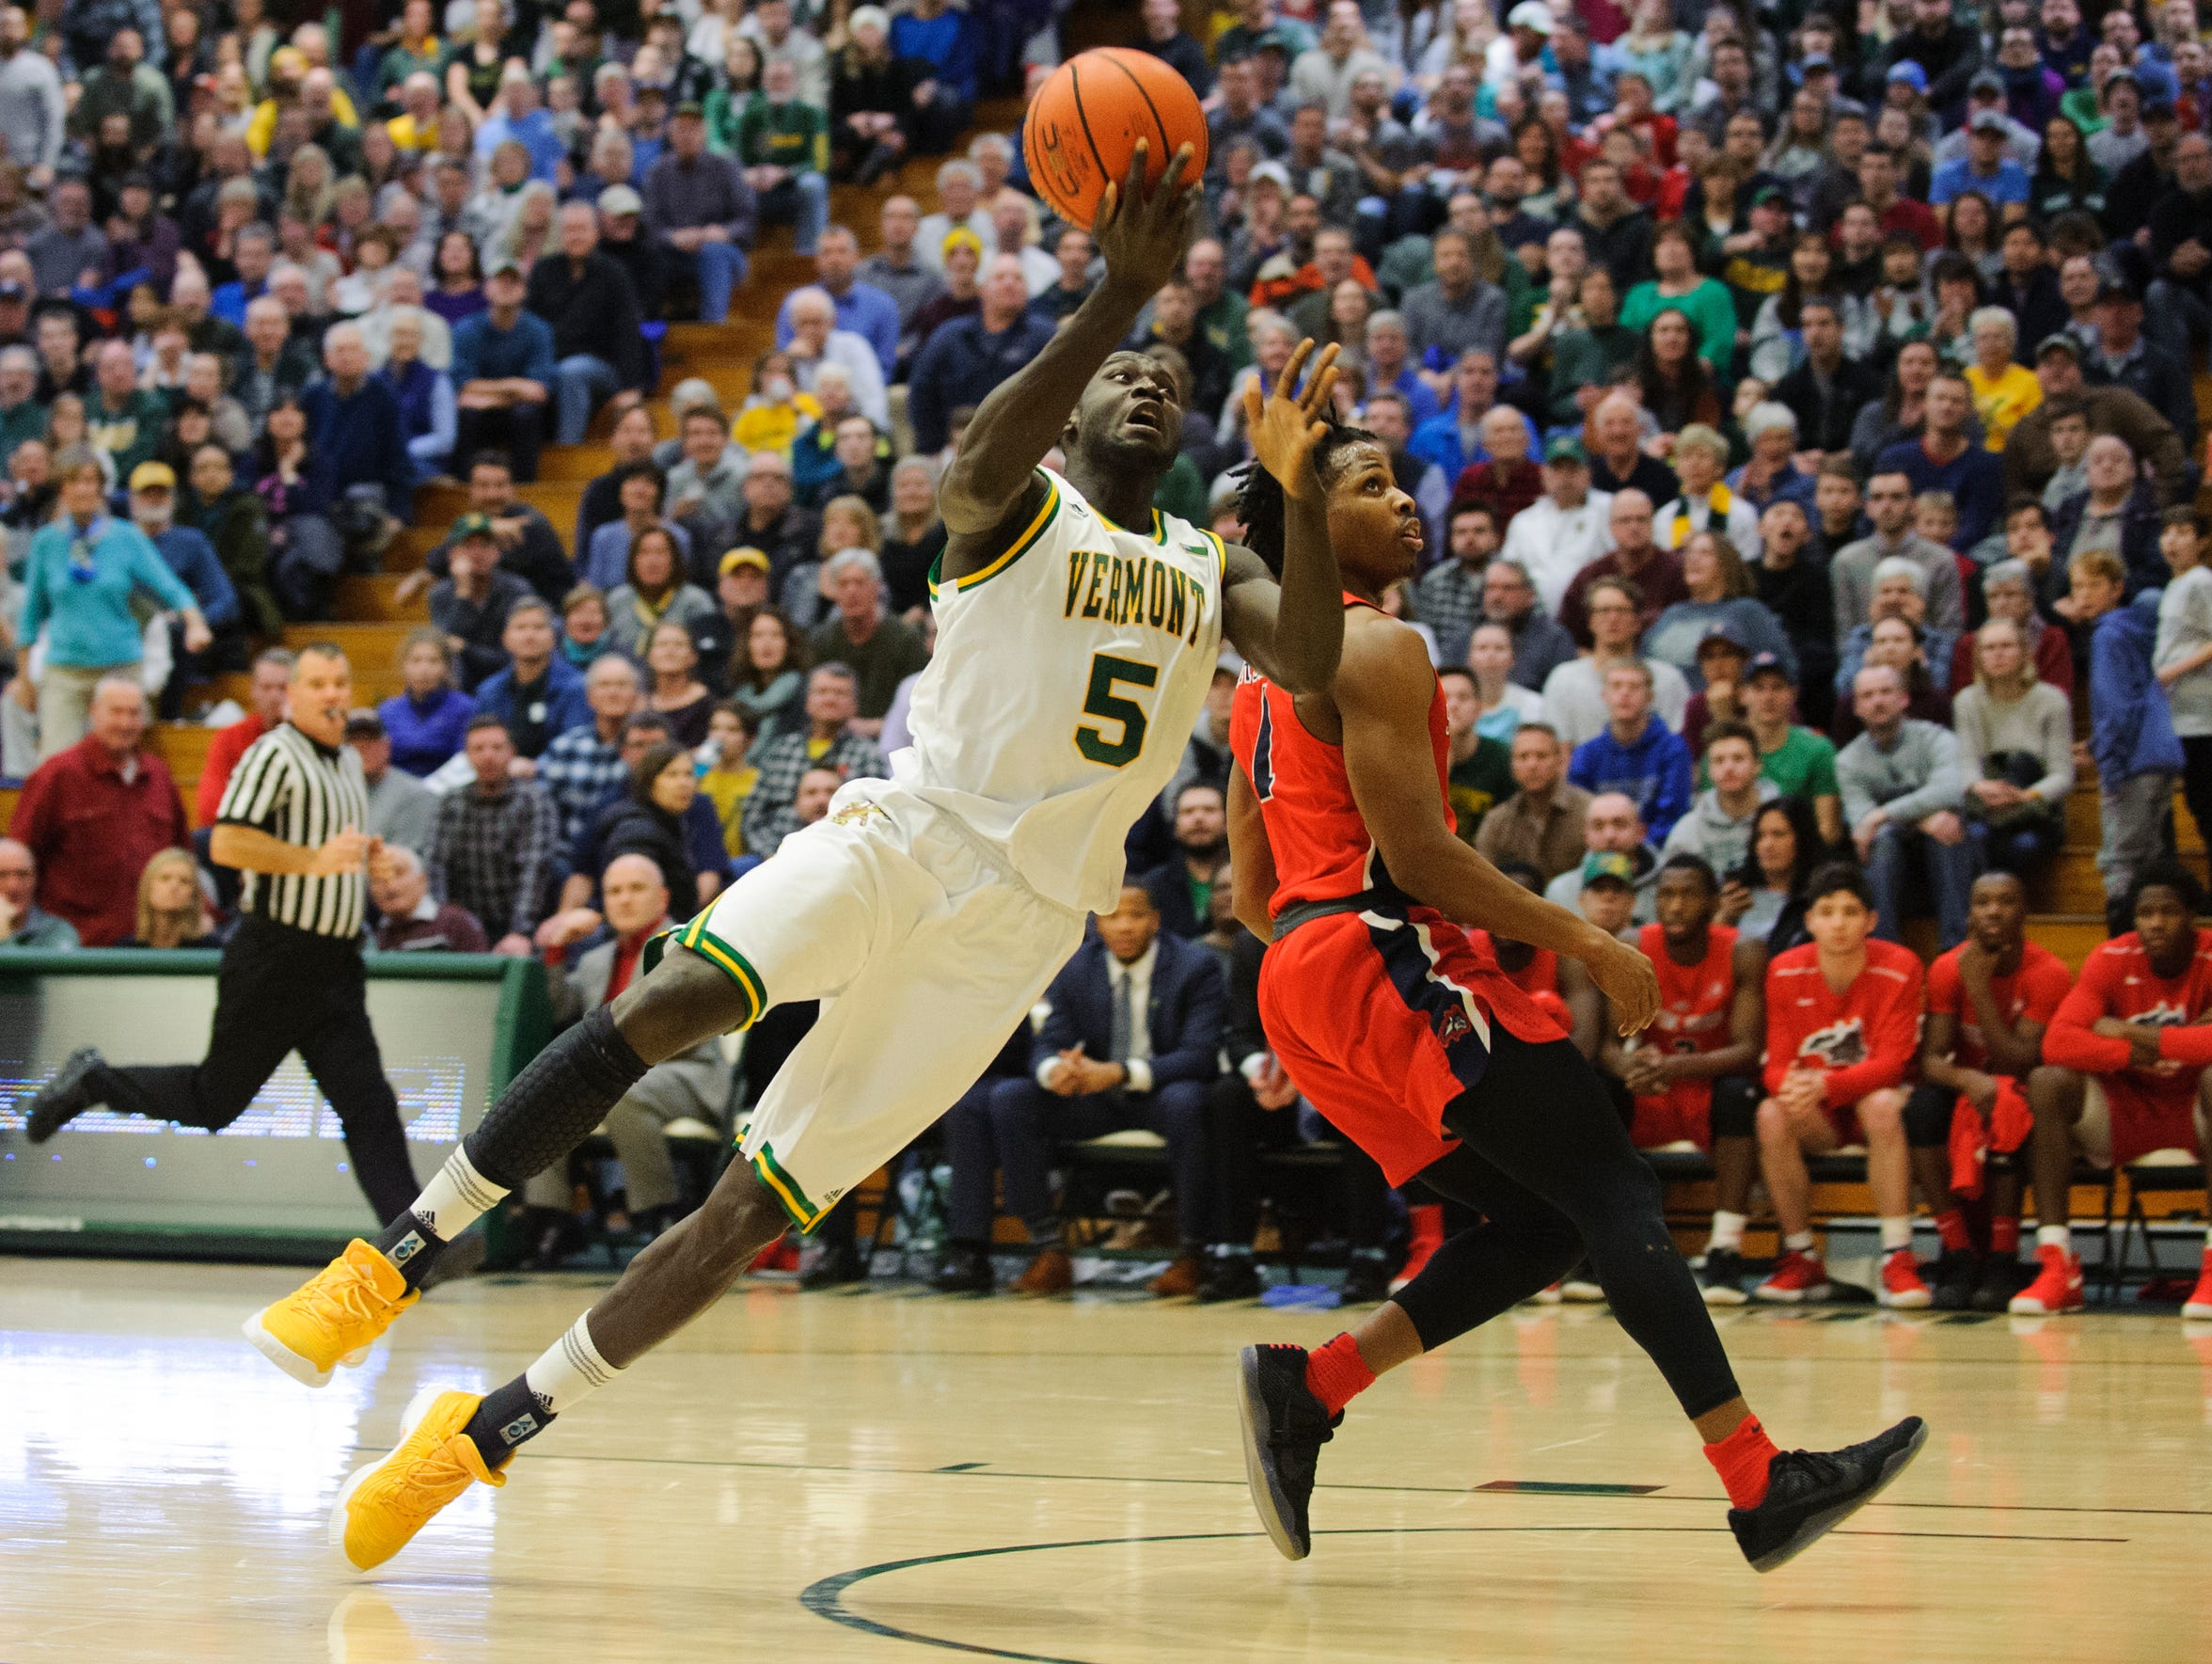 Vermont's Samuel Dingba (5) is fouled during a game last season.